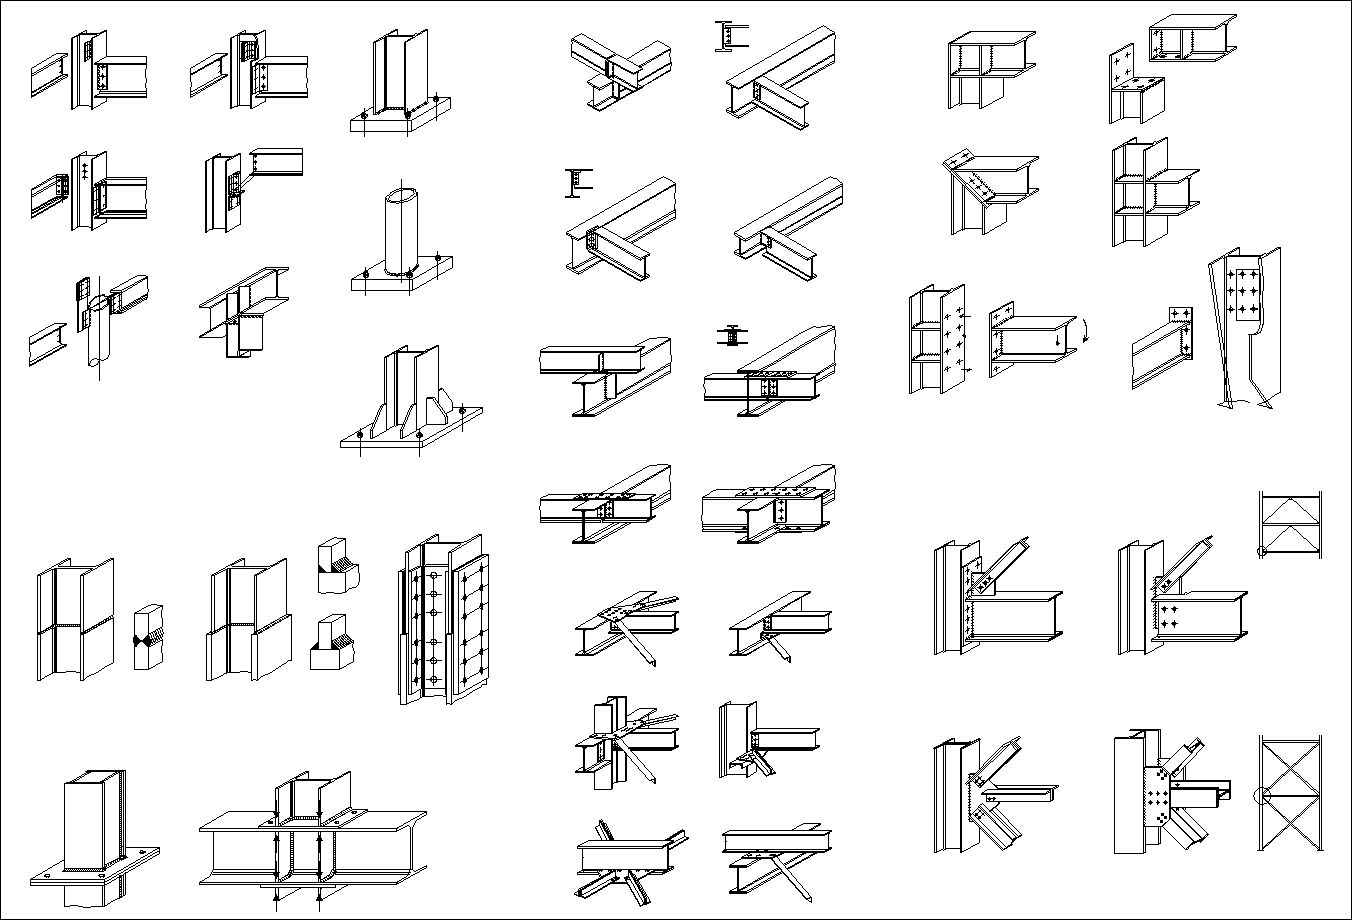 Pin by Sunny on steel structure in 2018 | Pinterest | Steel ...